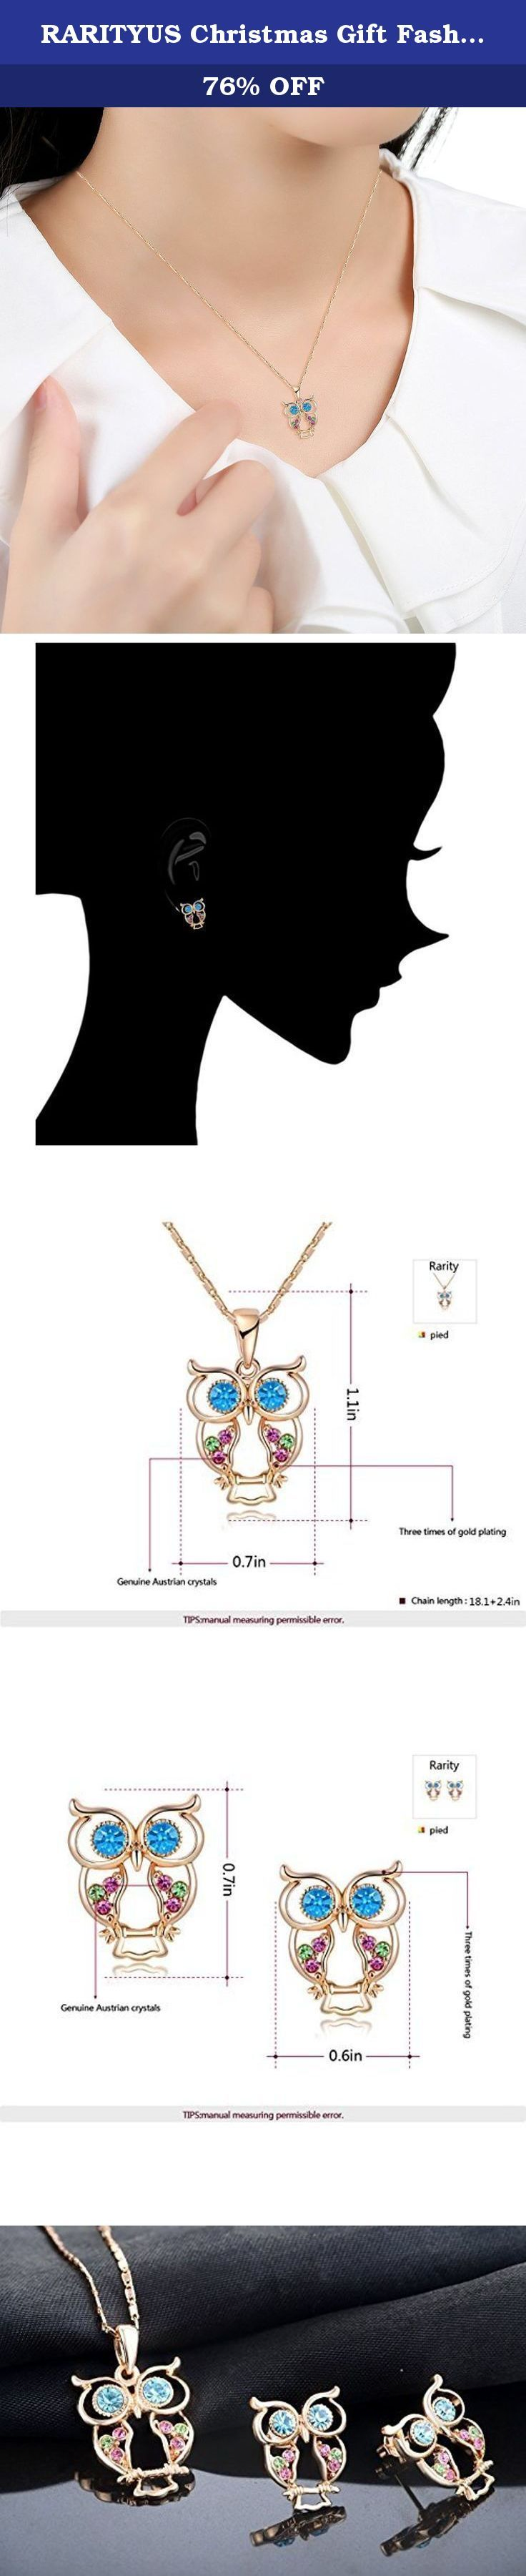 RARITYUS Christmas Gift Fashion Lovely Genuine Austrian Crystals Rose Gold Owl Earrings Pendant Necklace sets Jewelry. Jewelry Information: Brand Name: JEWELRY RARITYUS Attached Product:Silver Jewelry Polishing Cloth. Packaging: Exclusive Customized Deluxe Velvet Gift Box. Perfect Quality and Service: JEWELRY RARITYUS attaches importance to quality and service,in order to keep at high level,environmental friendly and healthy,nickel free and anti-allergic. JEWELRY RARITYUS aims to give you...